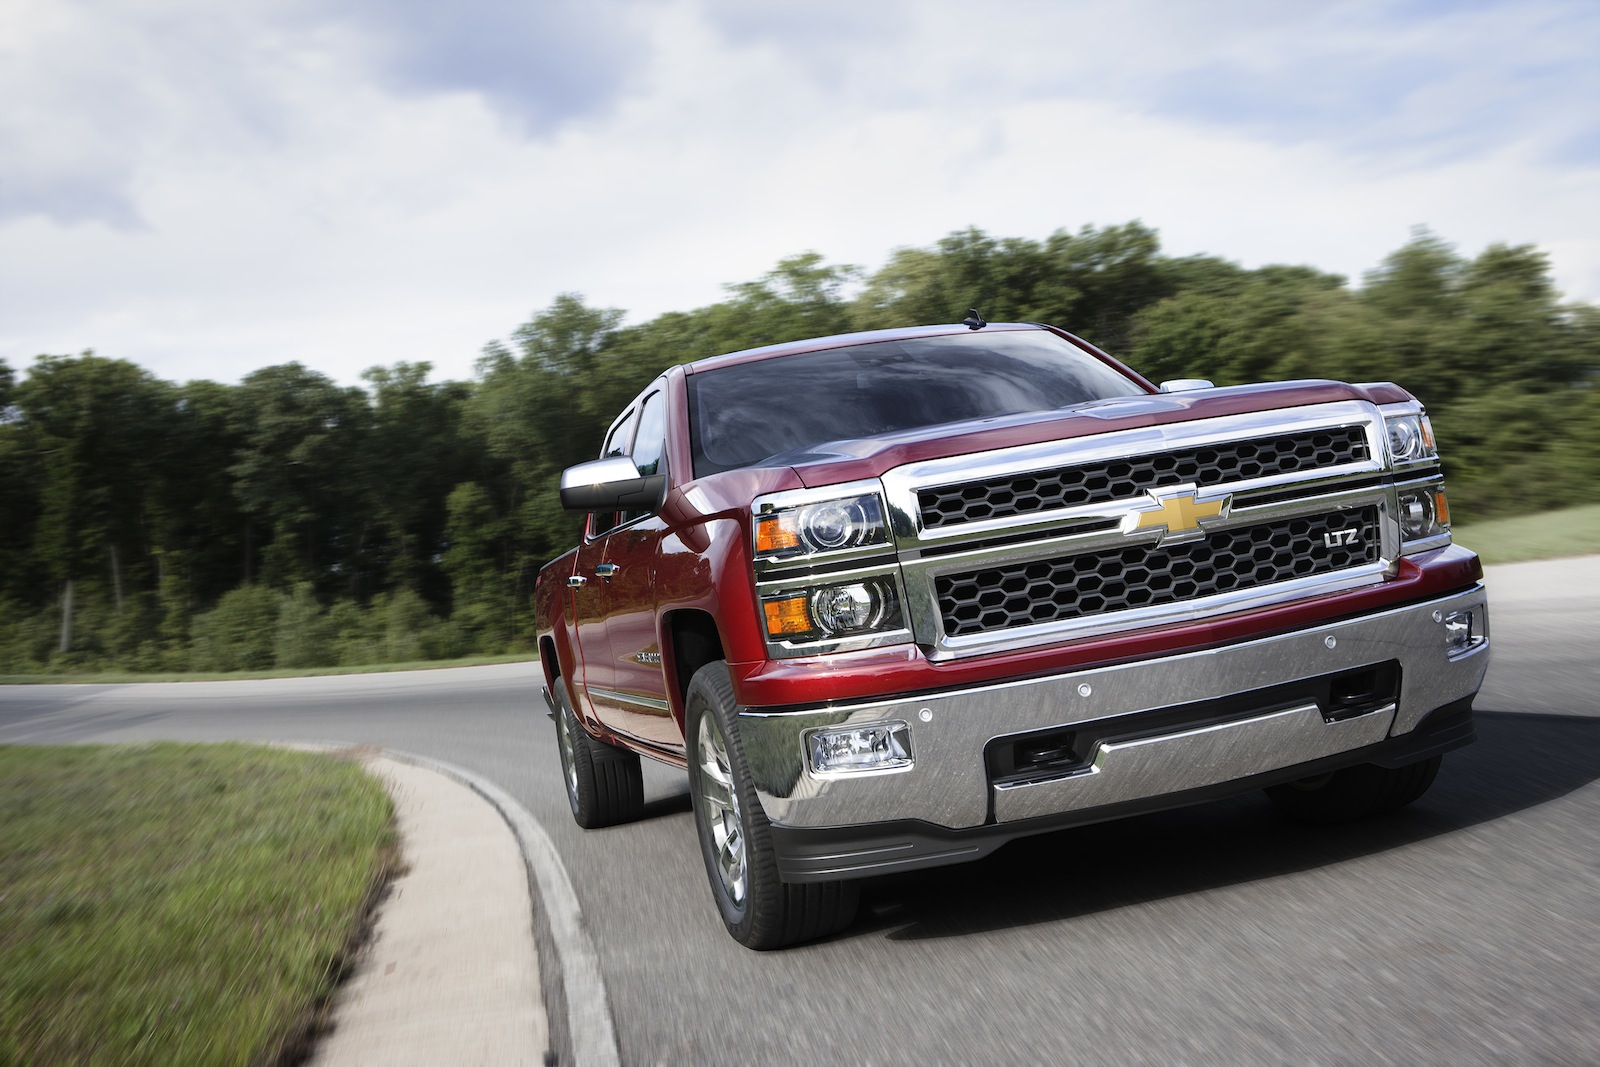 2014 Chevrolet Silverado, GMC Sierra recalled over power